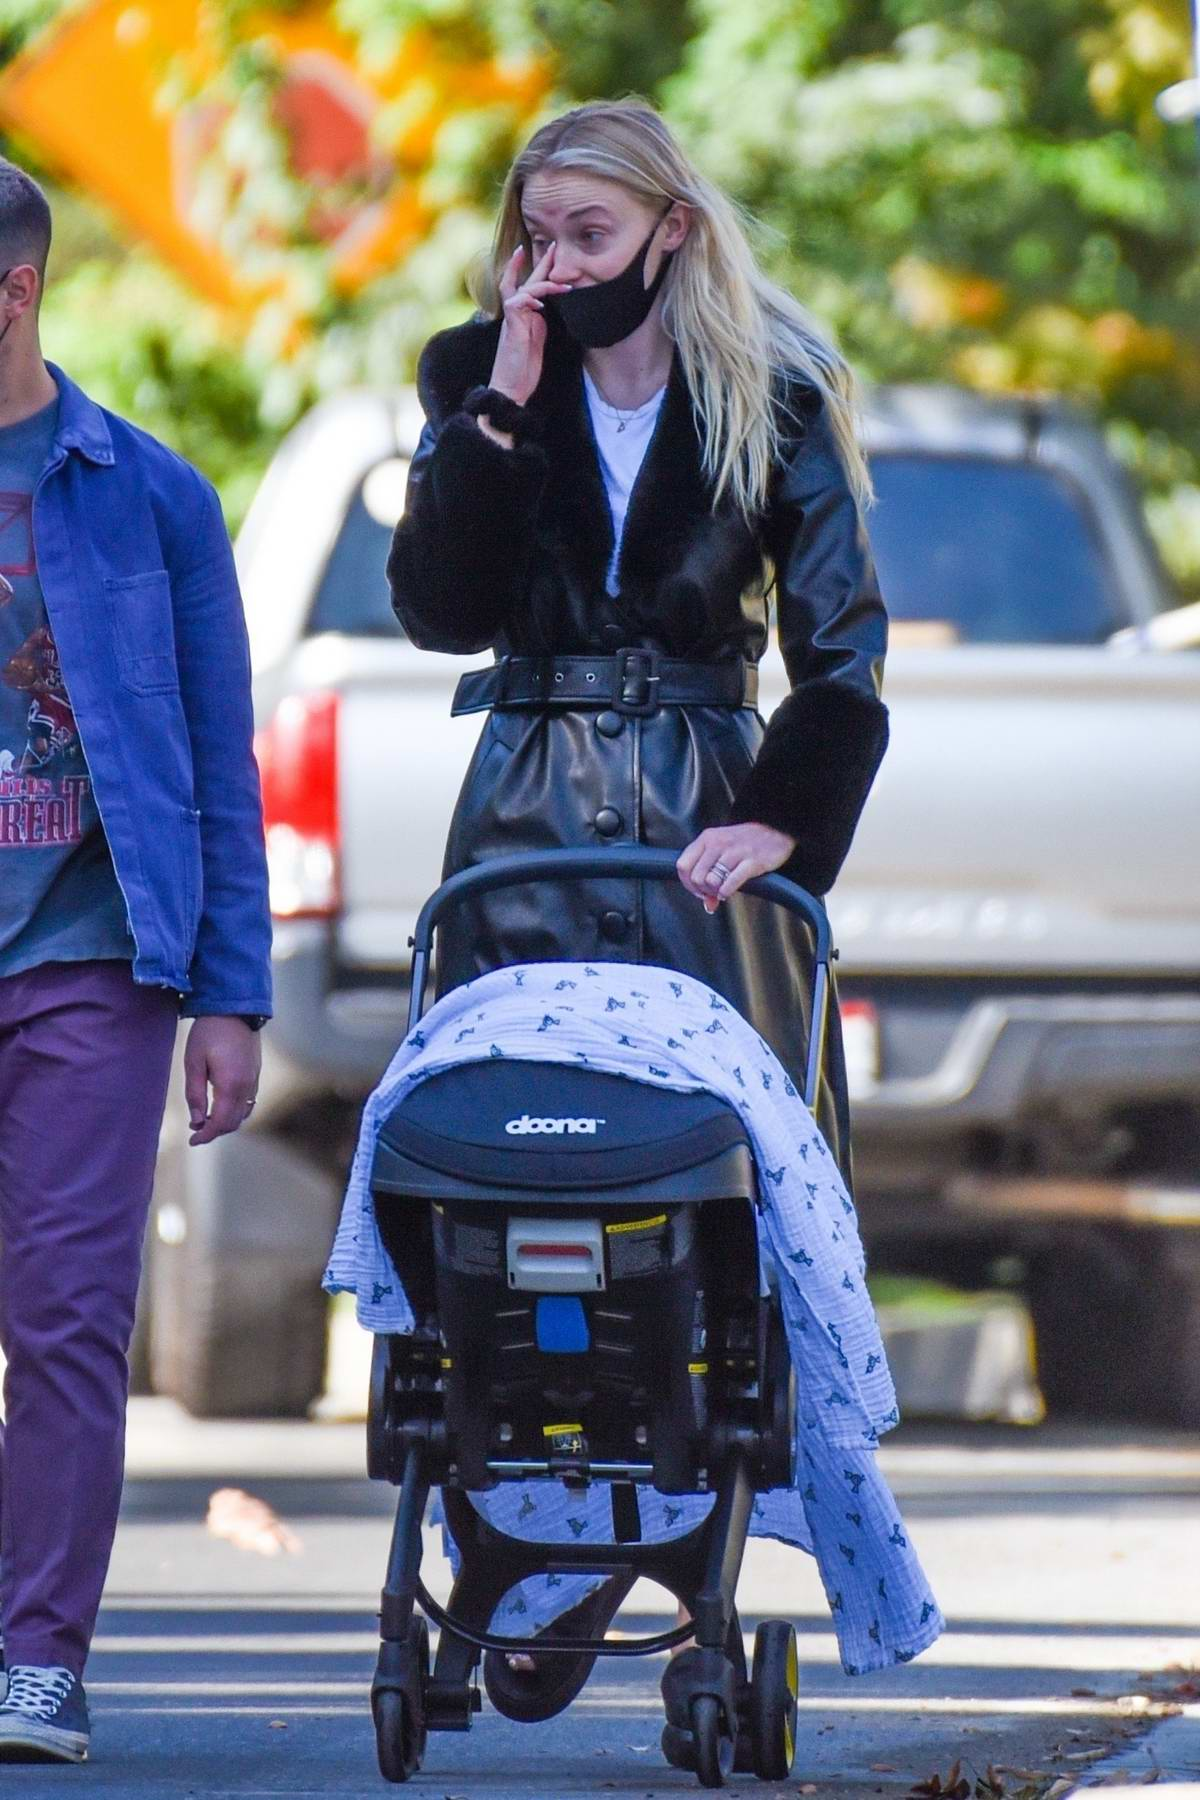 Sophie Turner and Joe Jonas get some fresh air during a stroll with their daughter in Los Angeles